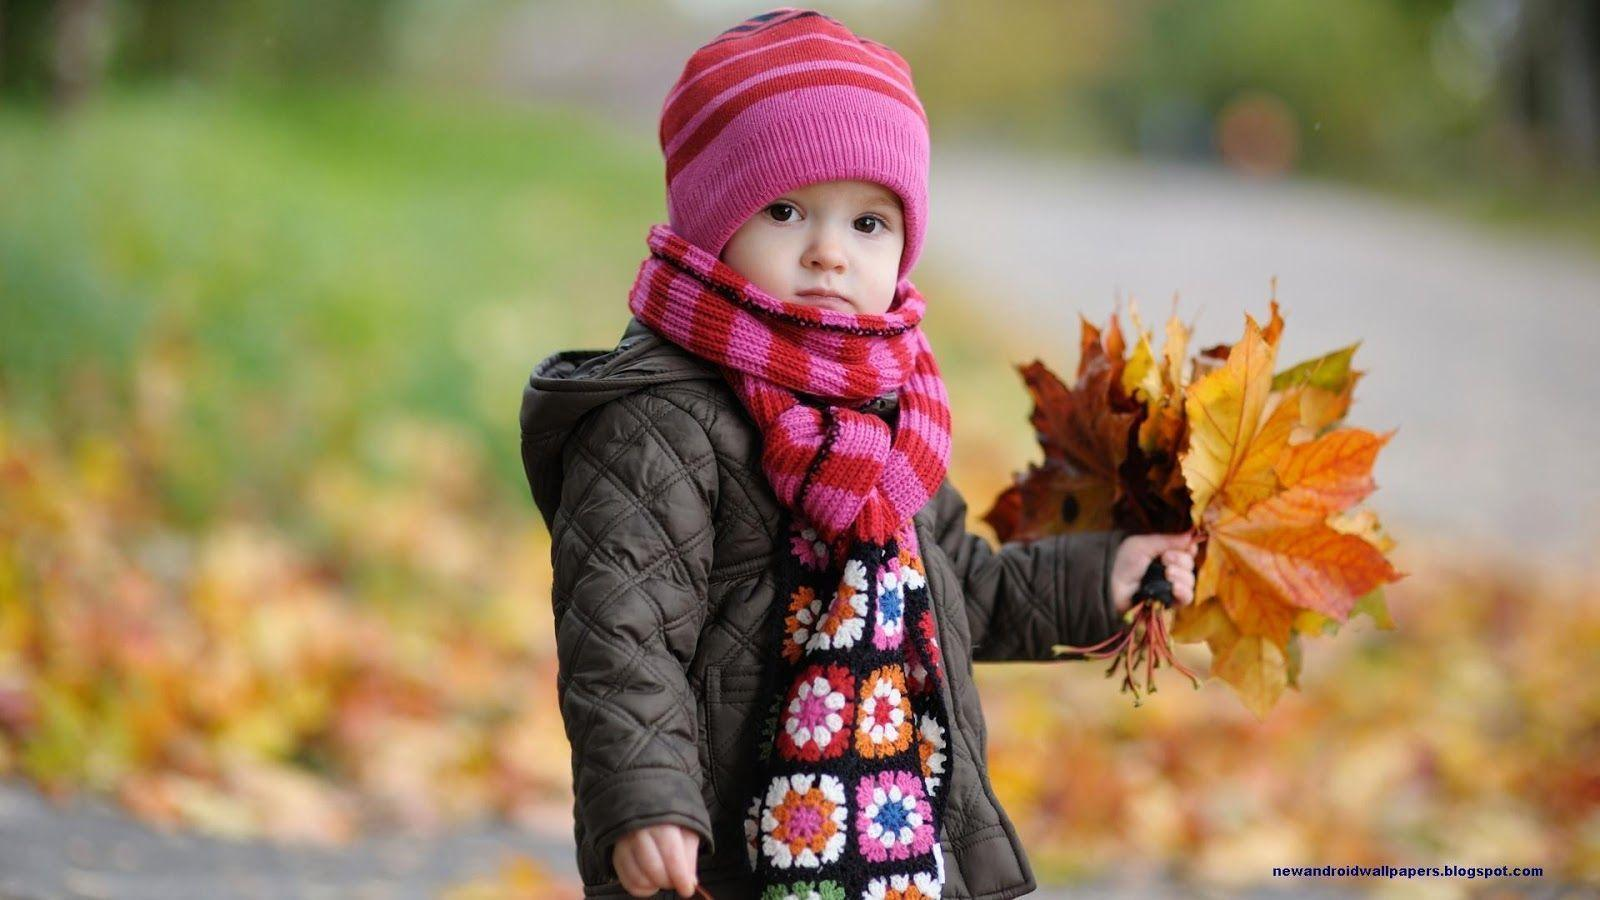 Nice cute babies Photos Hd Wallppaers Cute And Nice Baby Wallpapers In High Quality Free Wallpaper Cave Nice Cute Wallpapers Wallpaper Cave